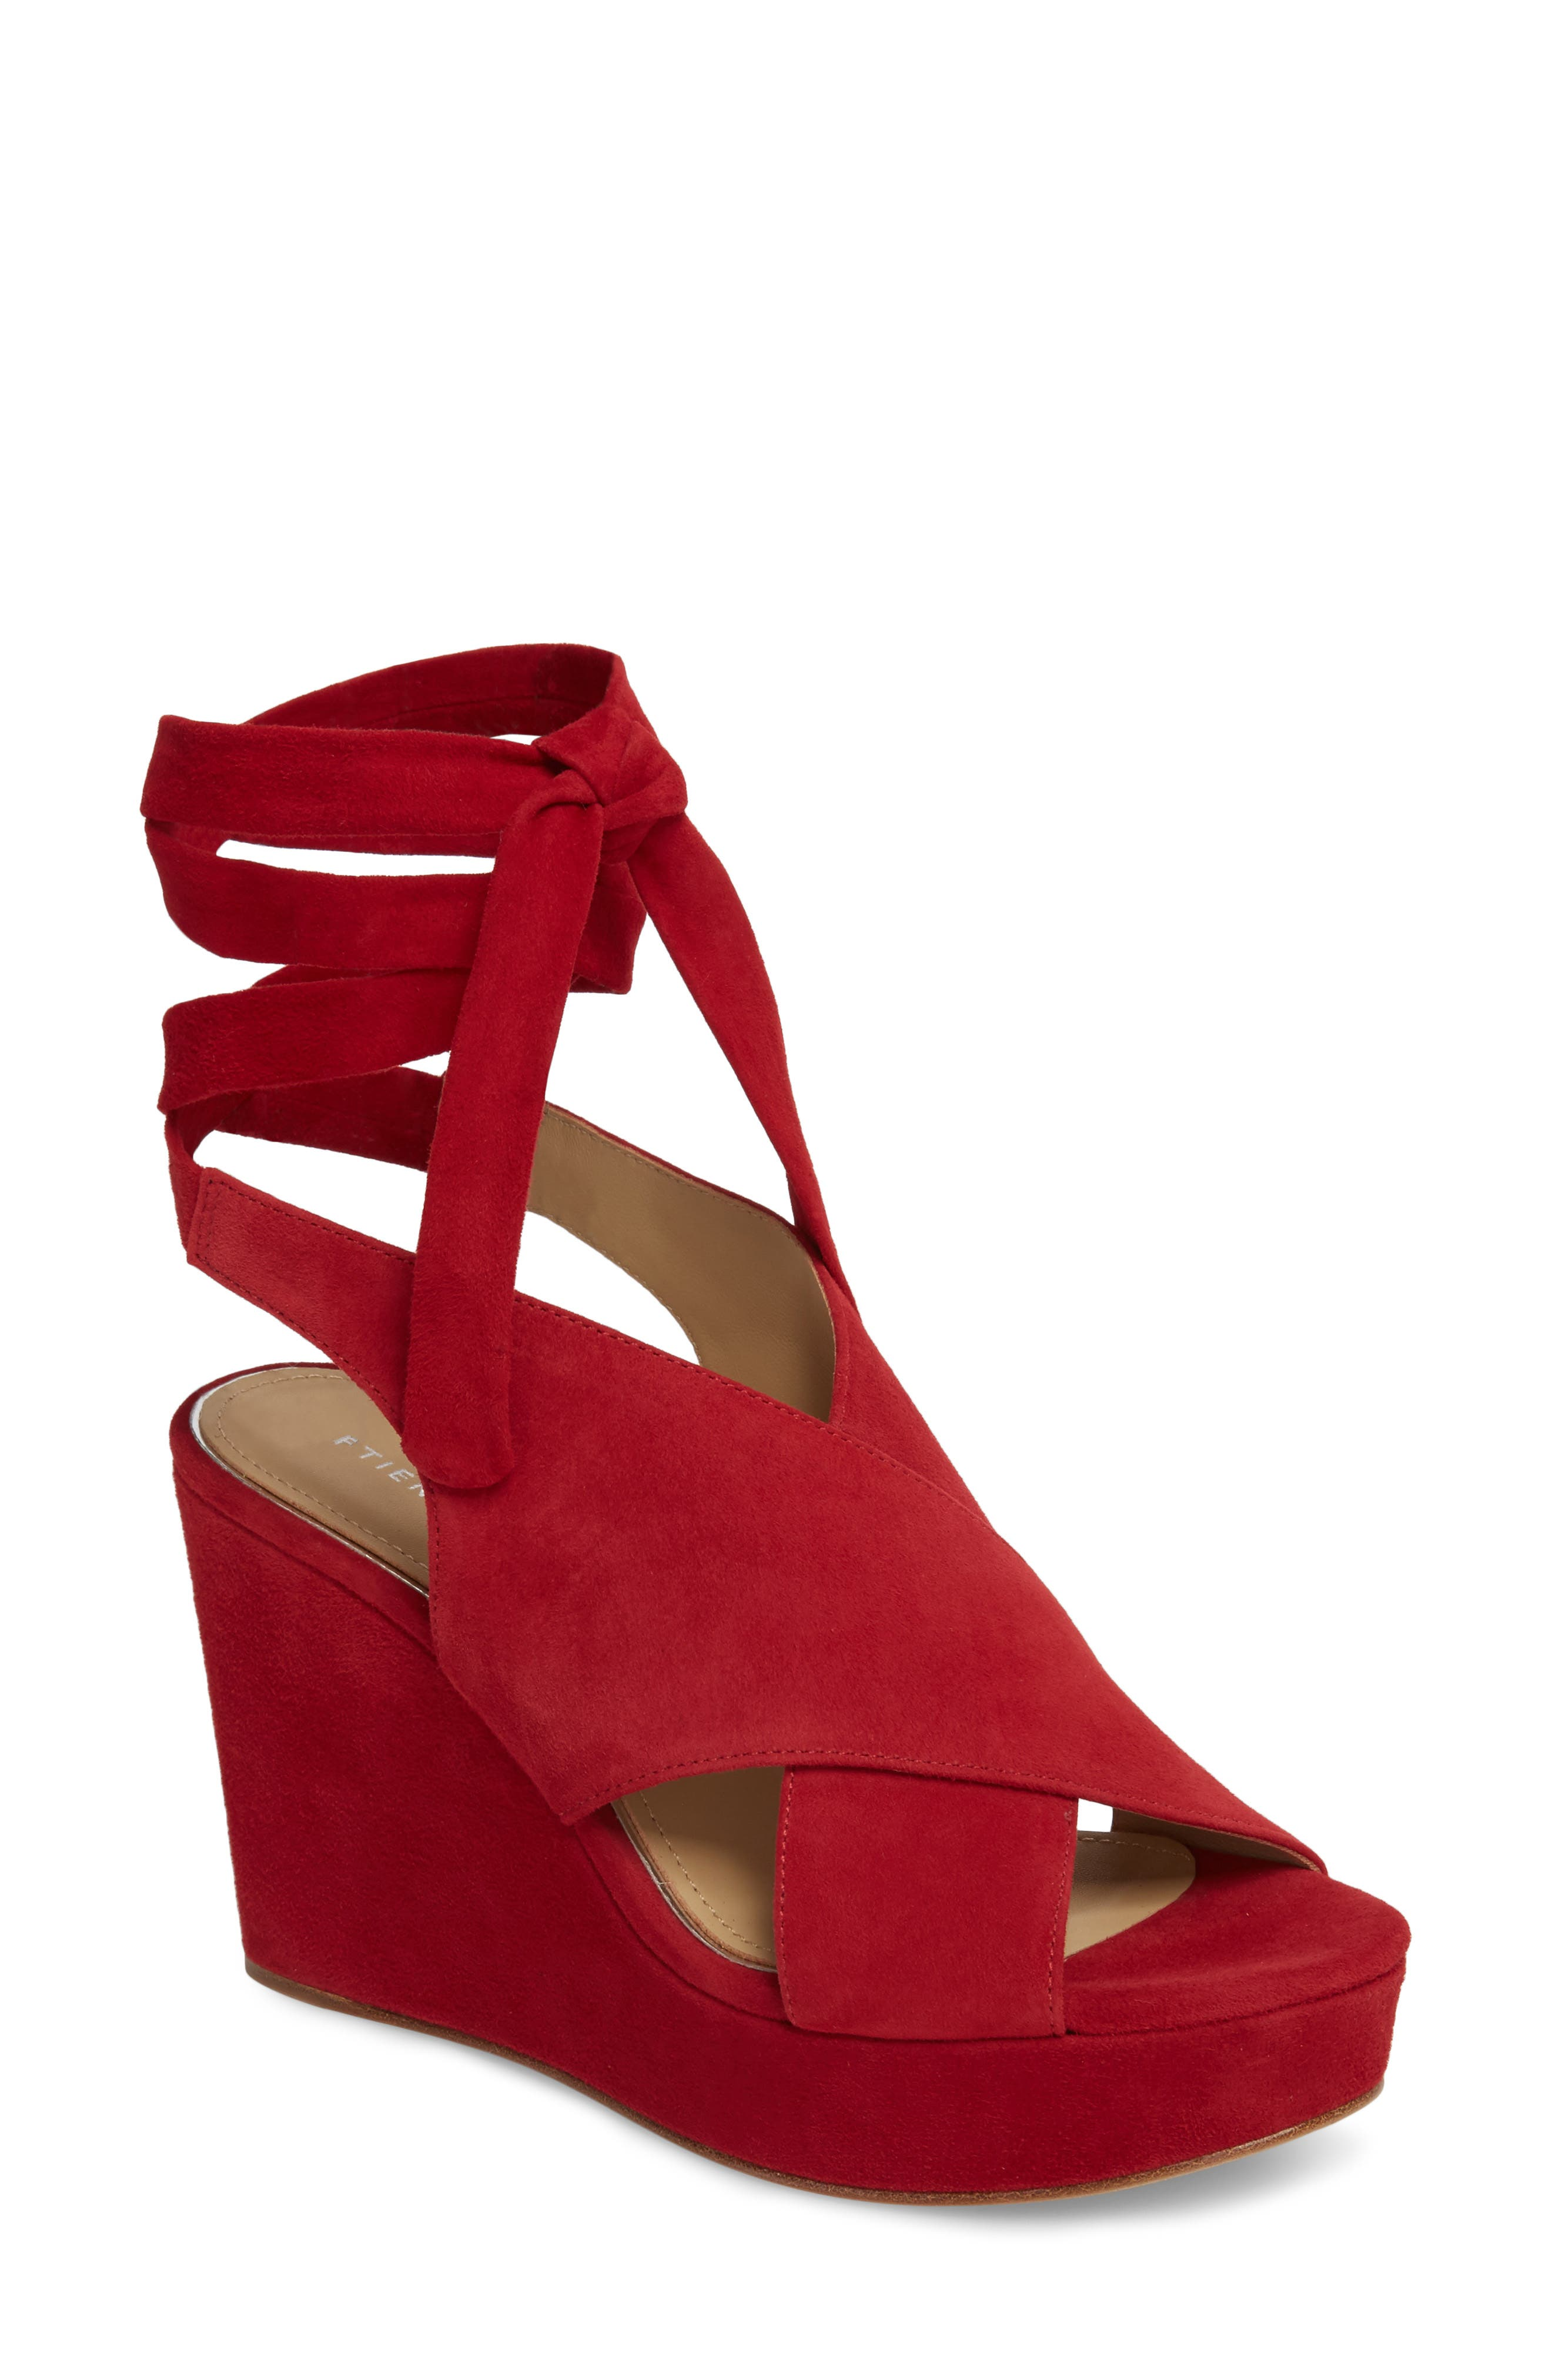 Dominica Platform Wedge Sandal,                         Main,                         color, Cherry Suede